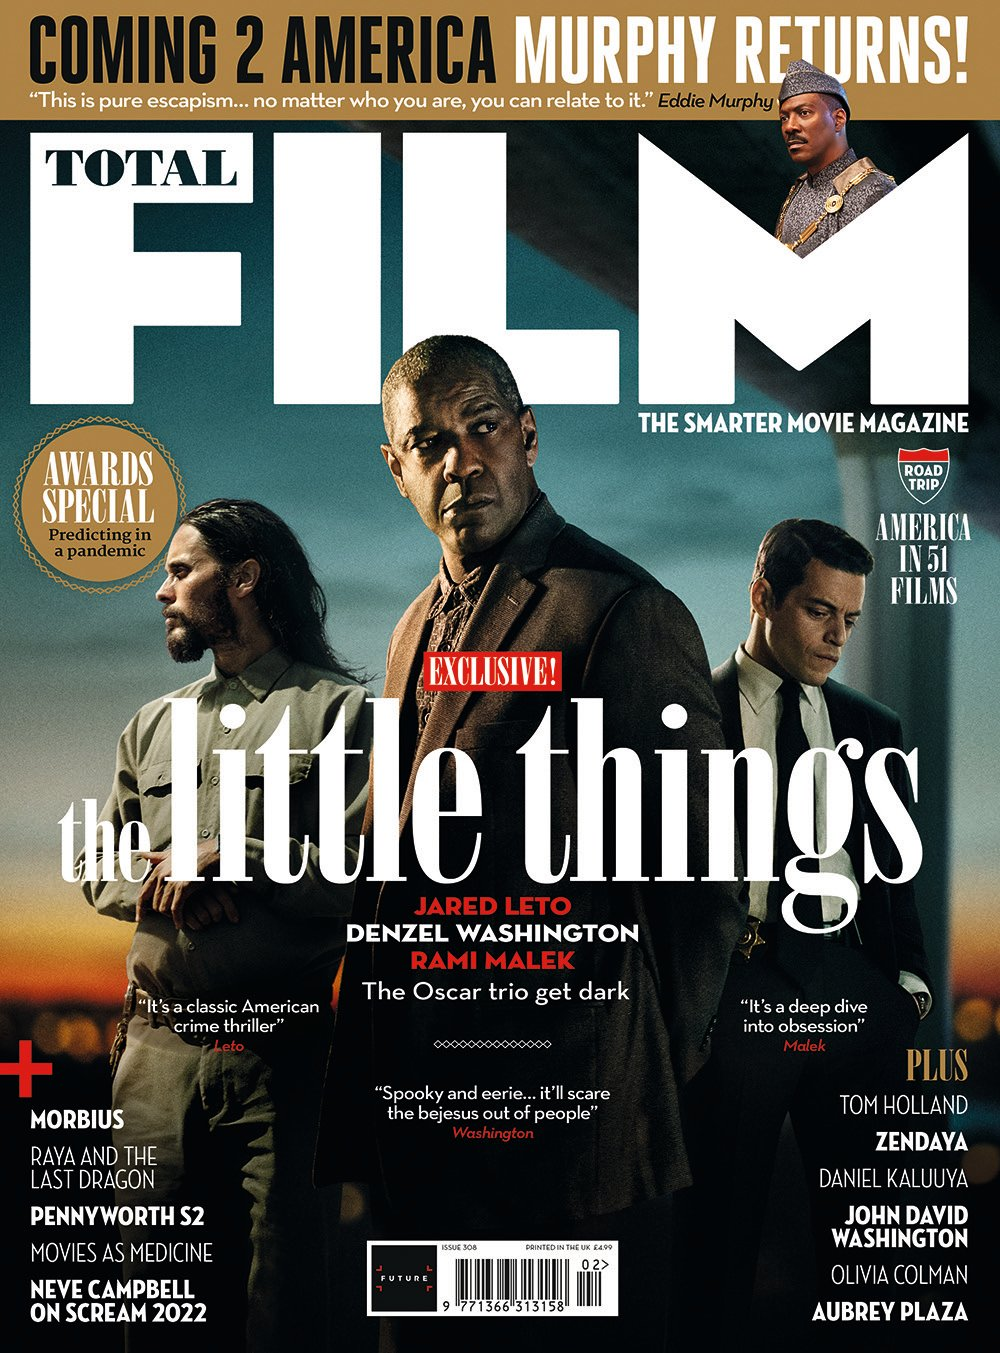 UK Total Film Magazine #308: the little things EXCLUSIVE Jared Leto Rami Malek